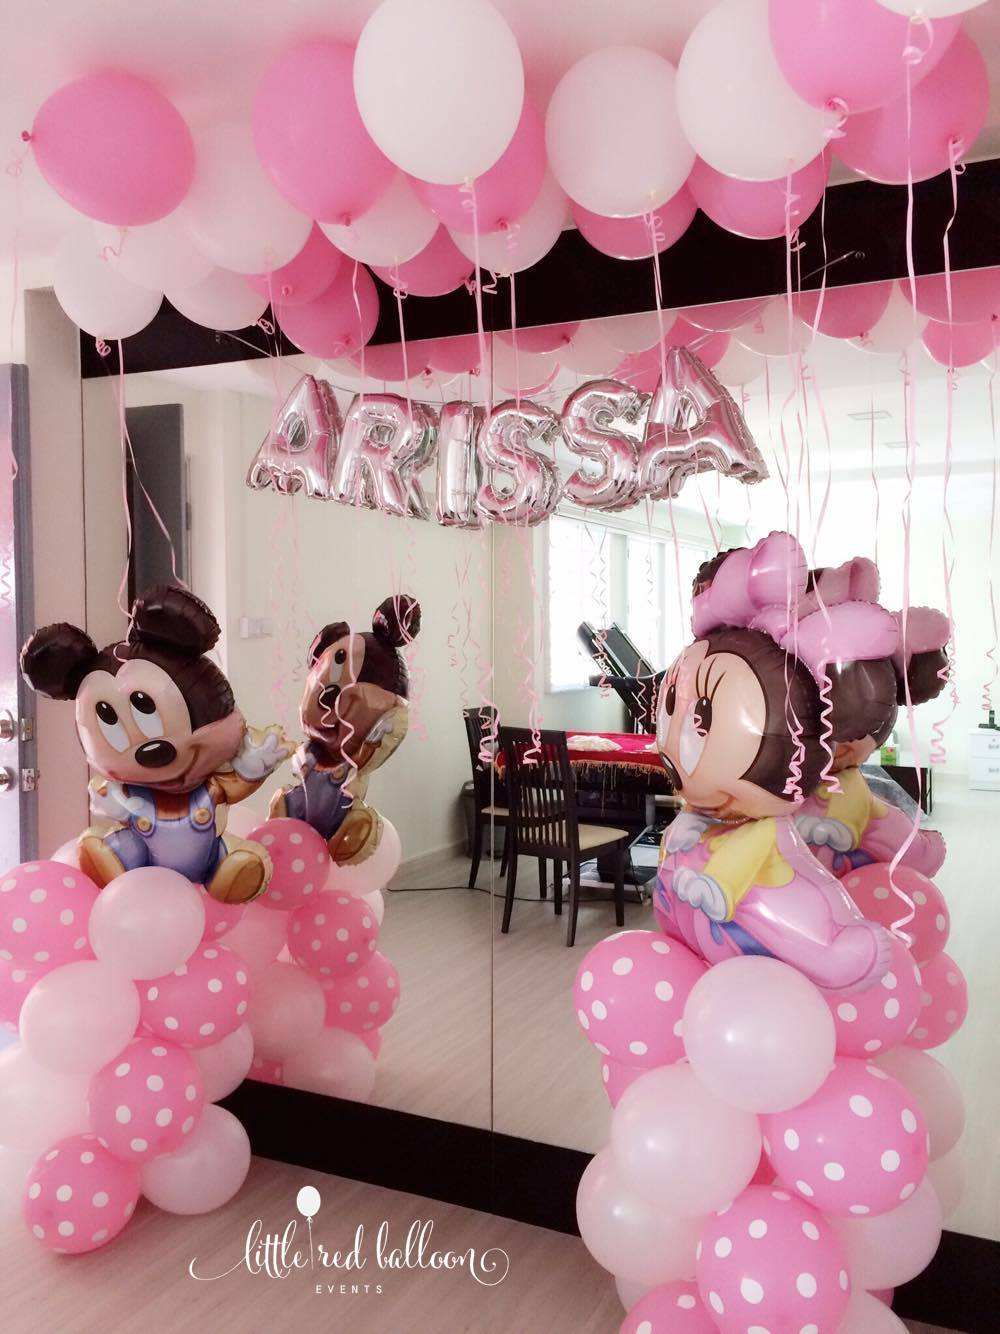 Mickey And Minnie Mouse Balloon Column Little Red